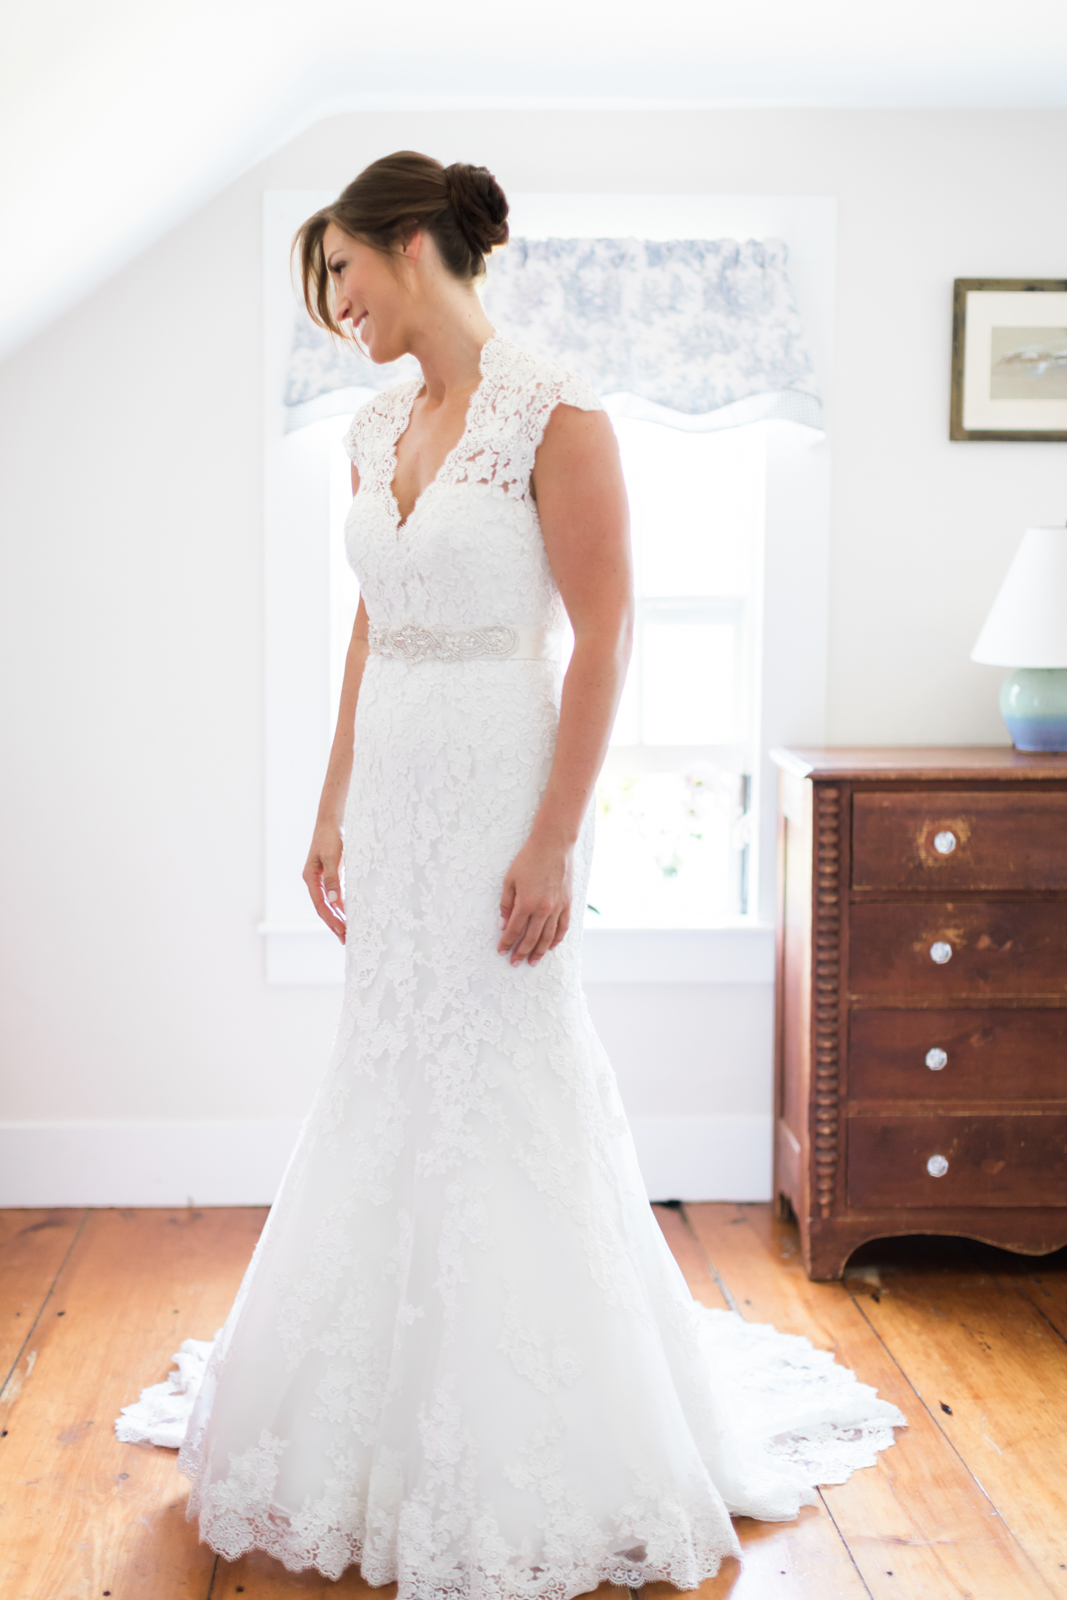 Martha's Vineyard Wedding Photography